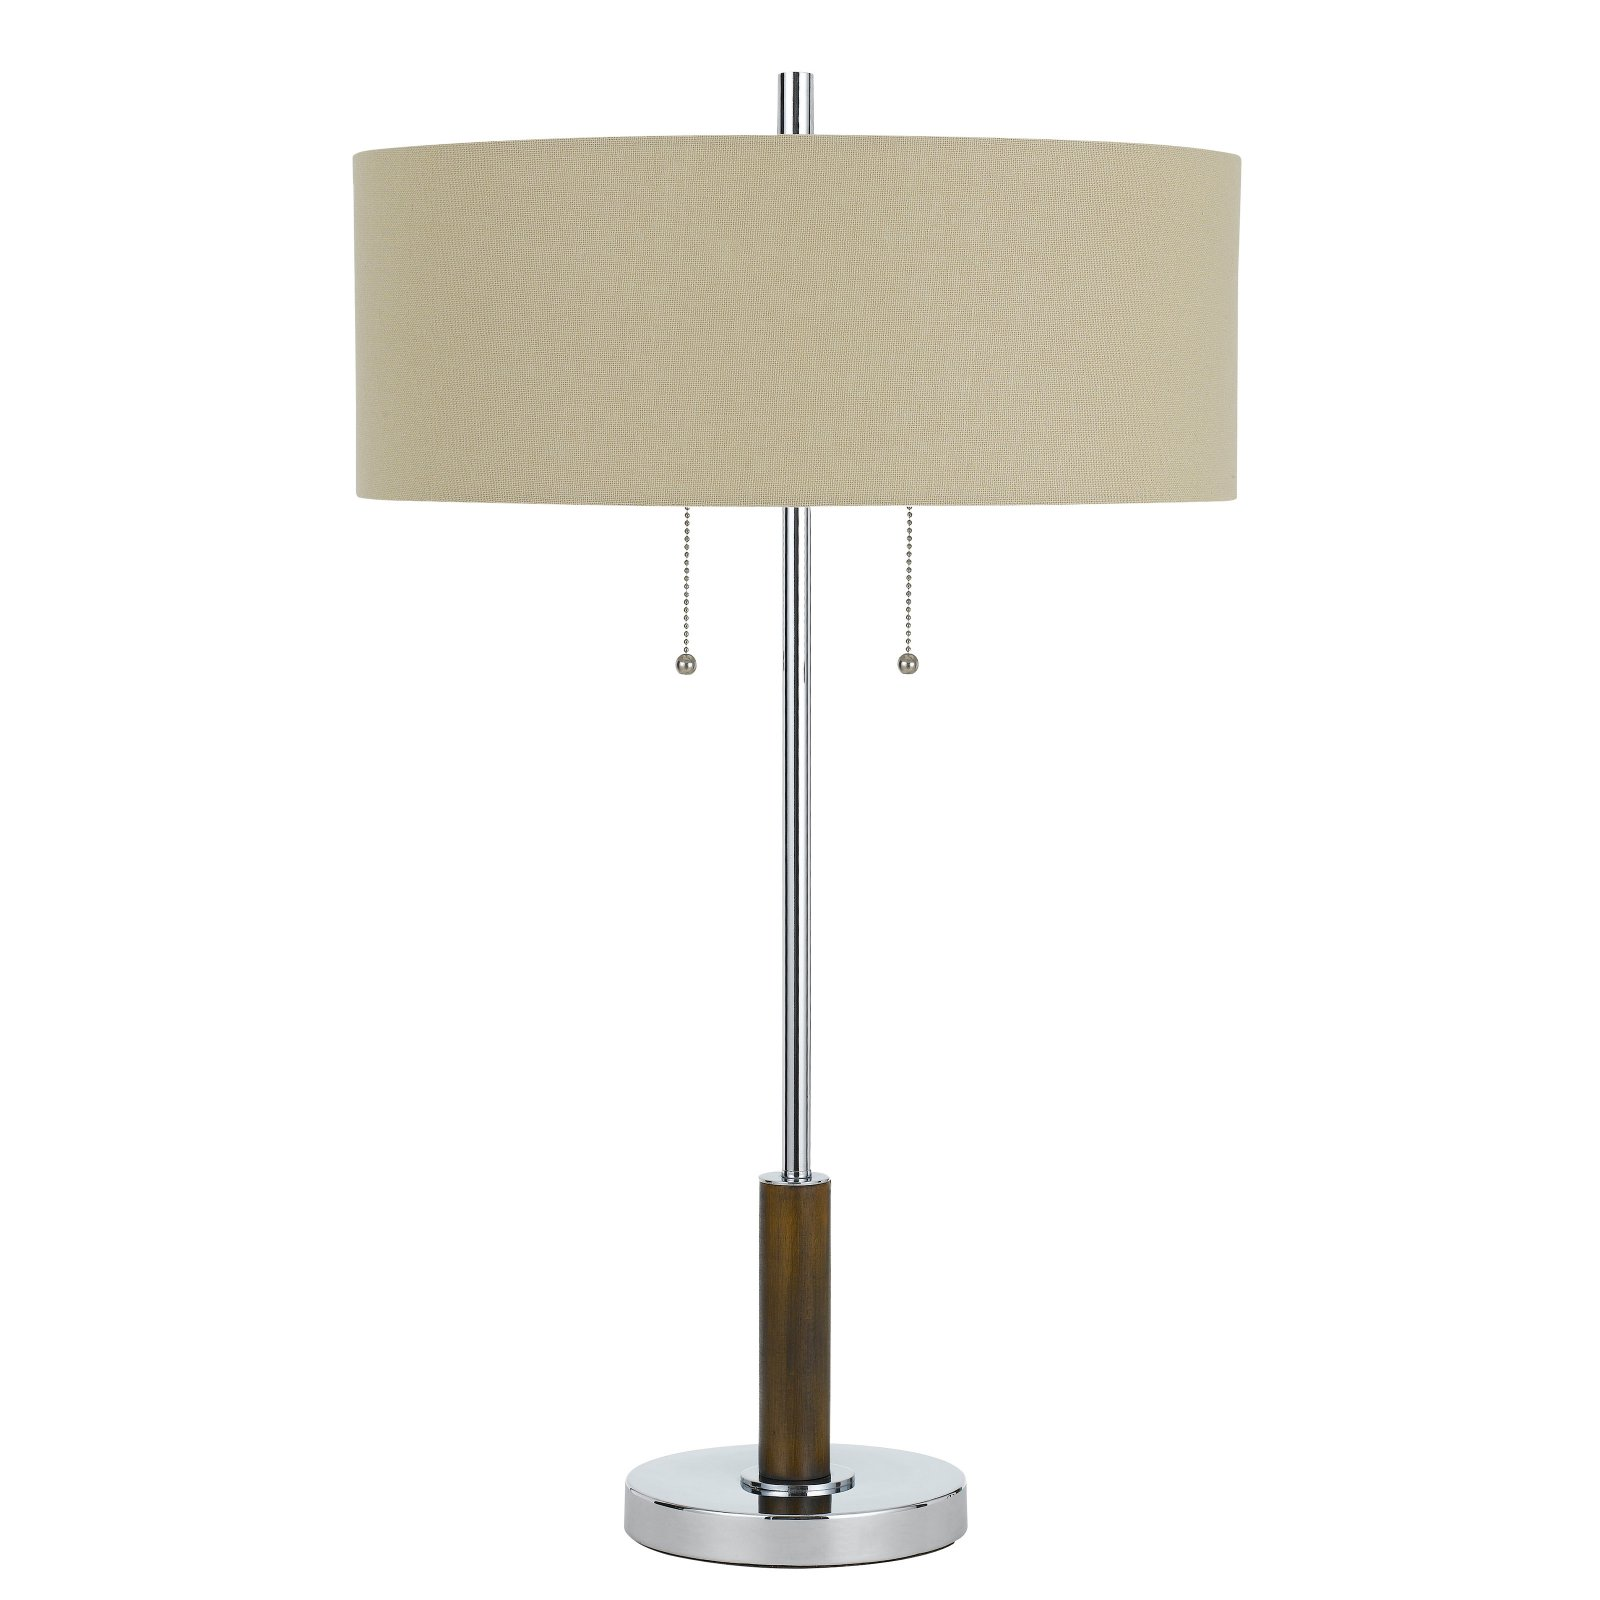 Cal Lighting Bari Table Lamp by CAL Lighting